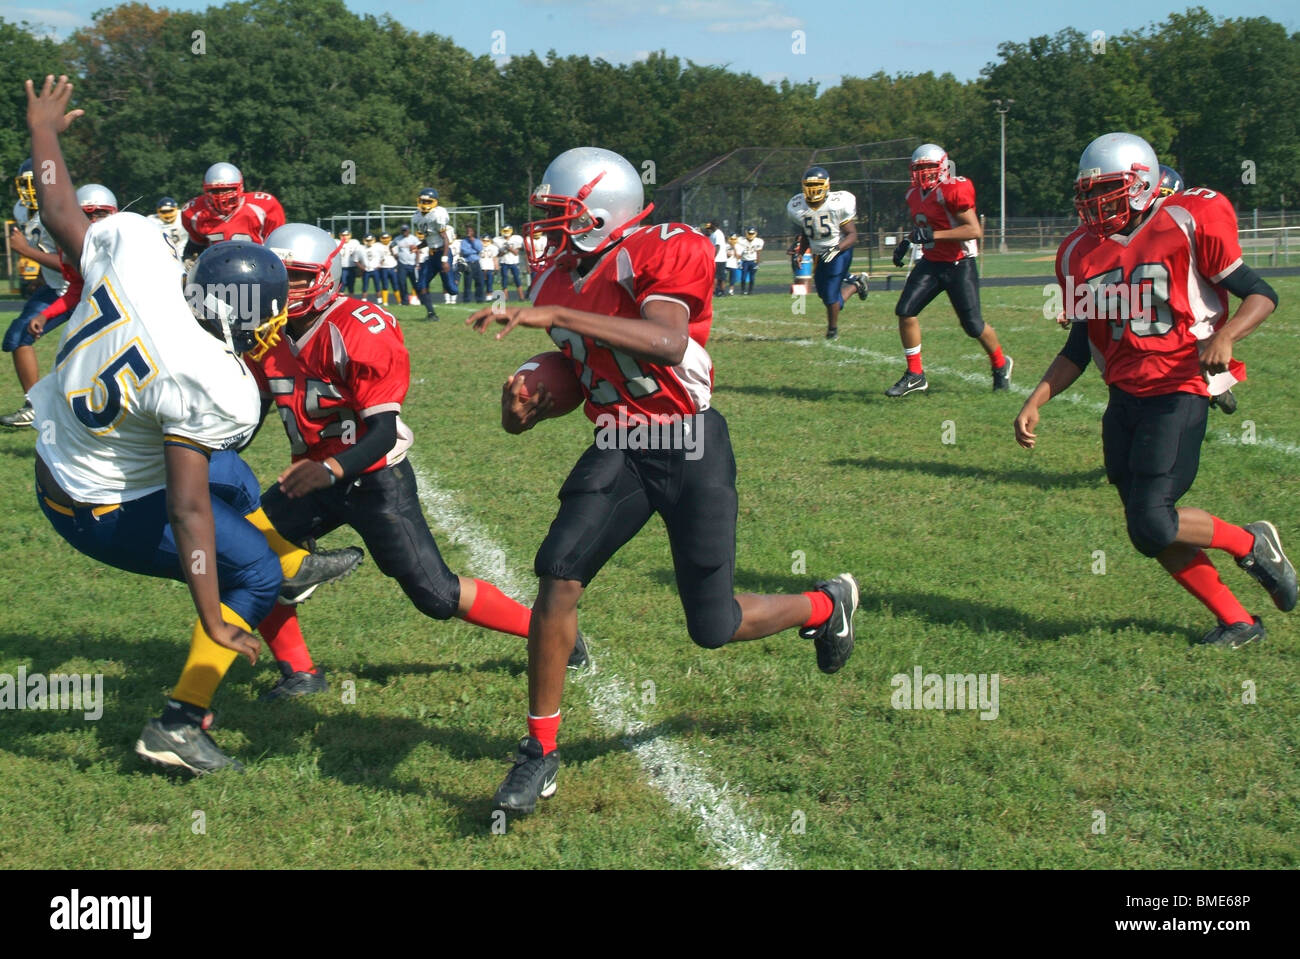 high school football game, Suitland, Md - Stock Image